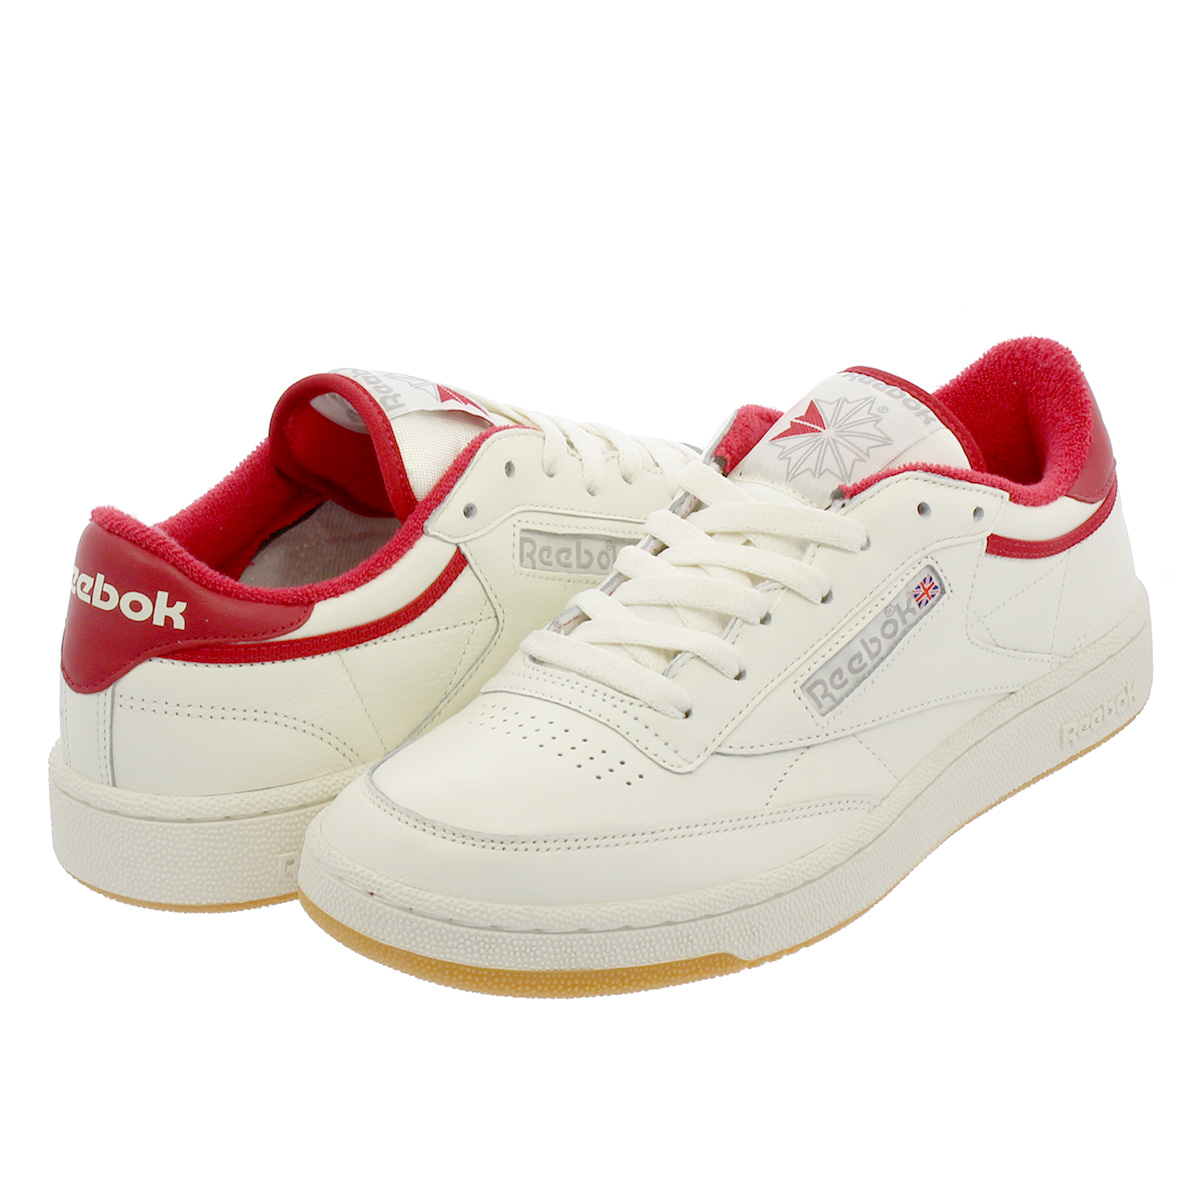 SELECT SHOP LOWTEX  Reebok CLUB C 85 INNERSECT Reebok club C 85 VINTAGE OFF  WHITE EXCELLENT RED GREY dv6823  d2a873de6